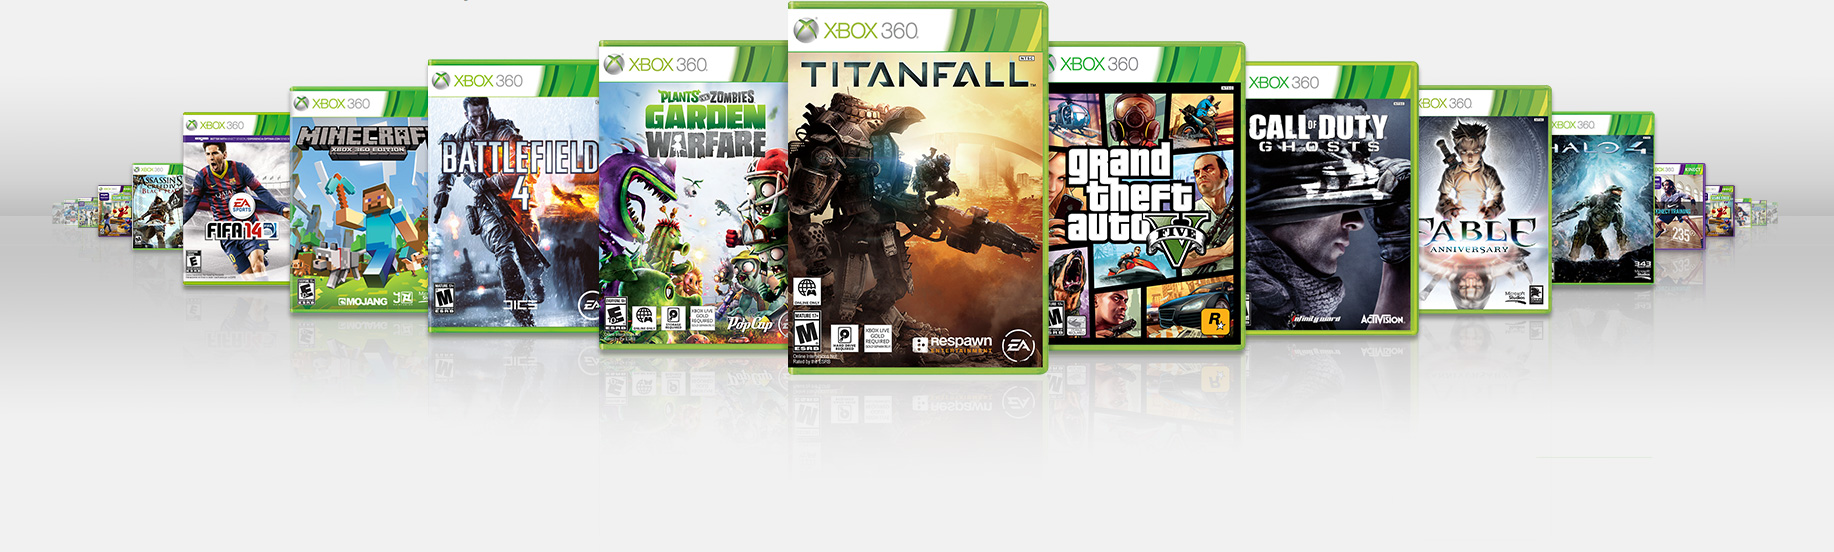 best free play games for xbox 360